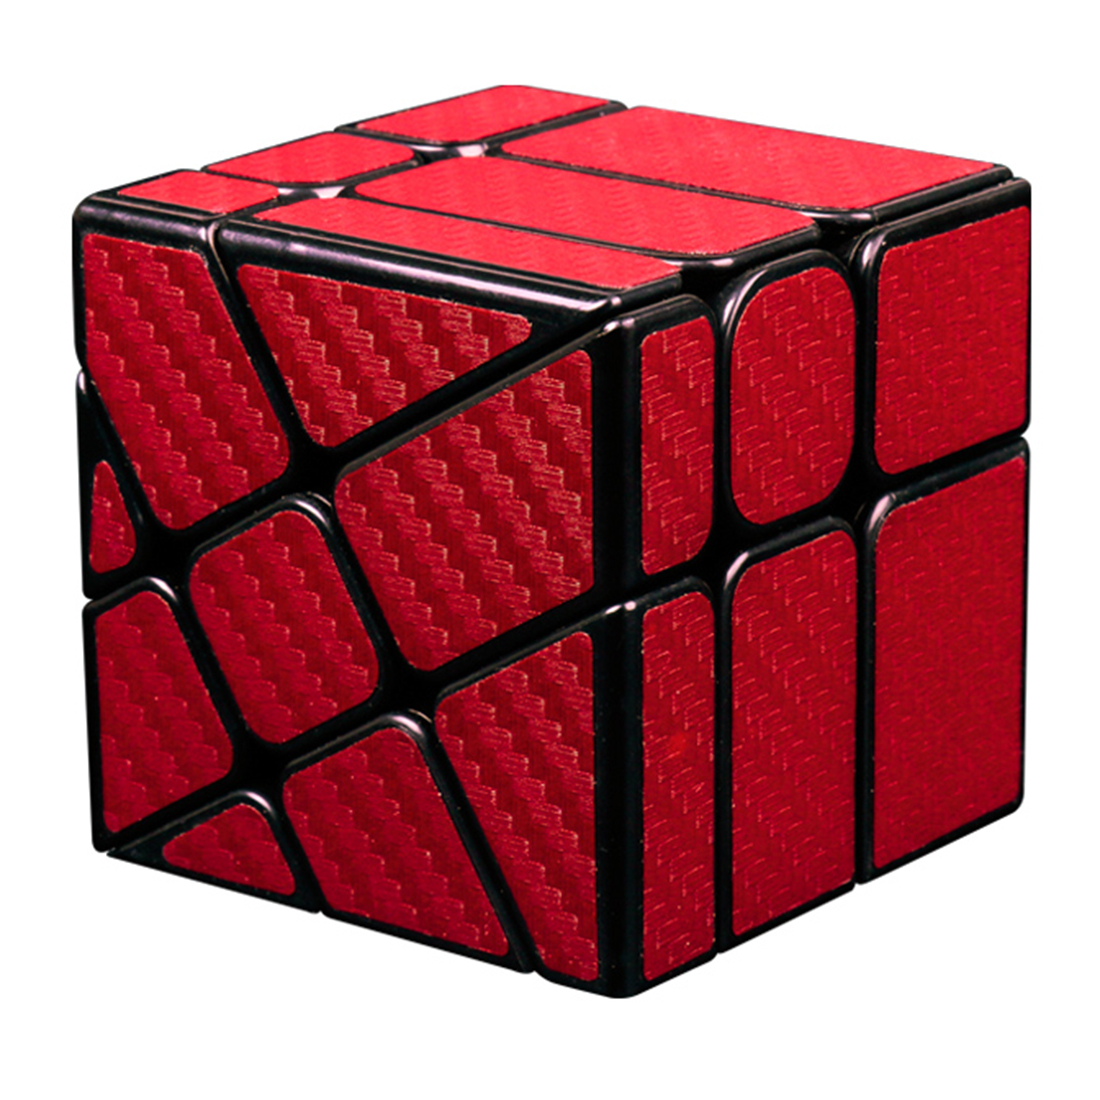 MF8830 Cubing Classroom Carbon Fiber Cube Hotwheel Funny Twisted Magic Cube Puzzle Toy for Challange - Red наталья медведева рассказ про кошечку